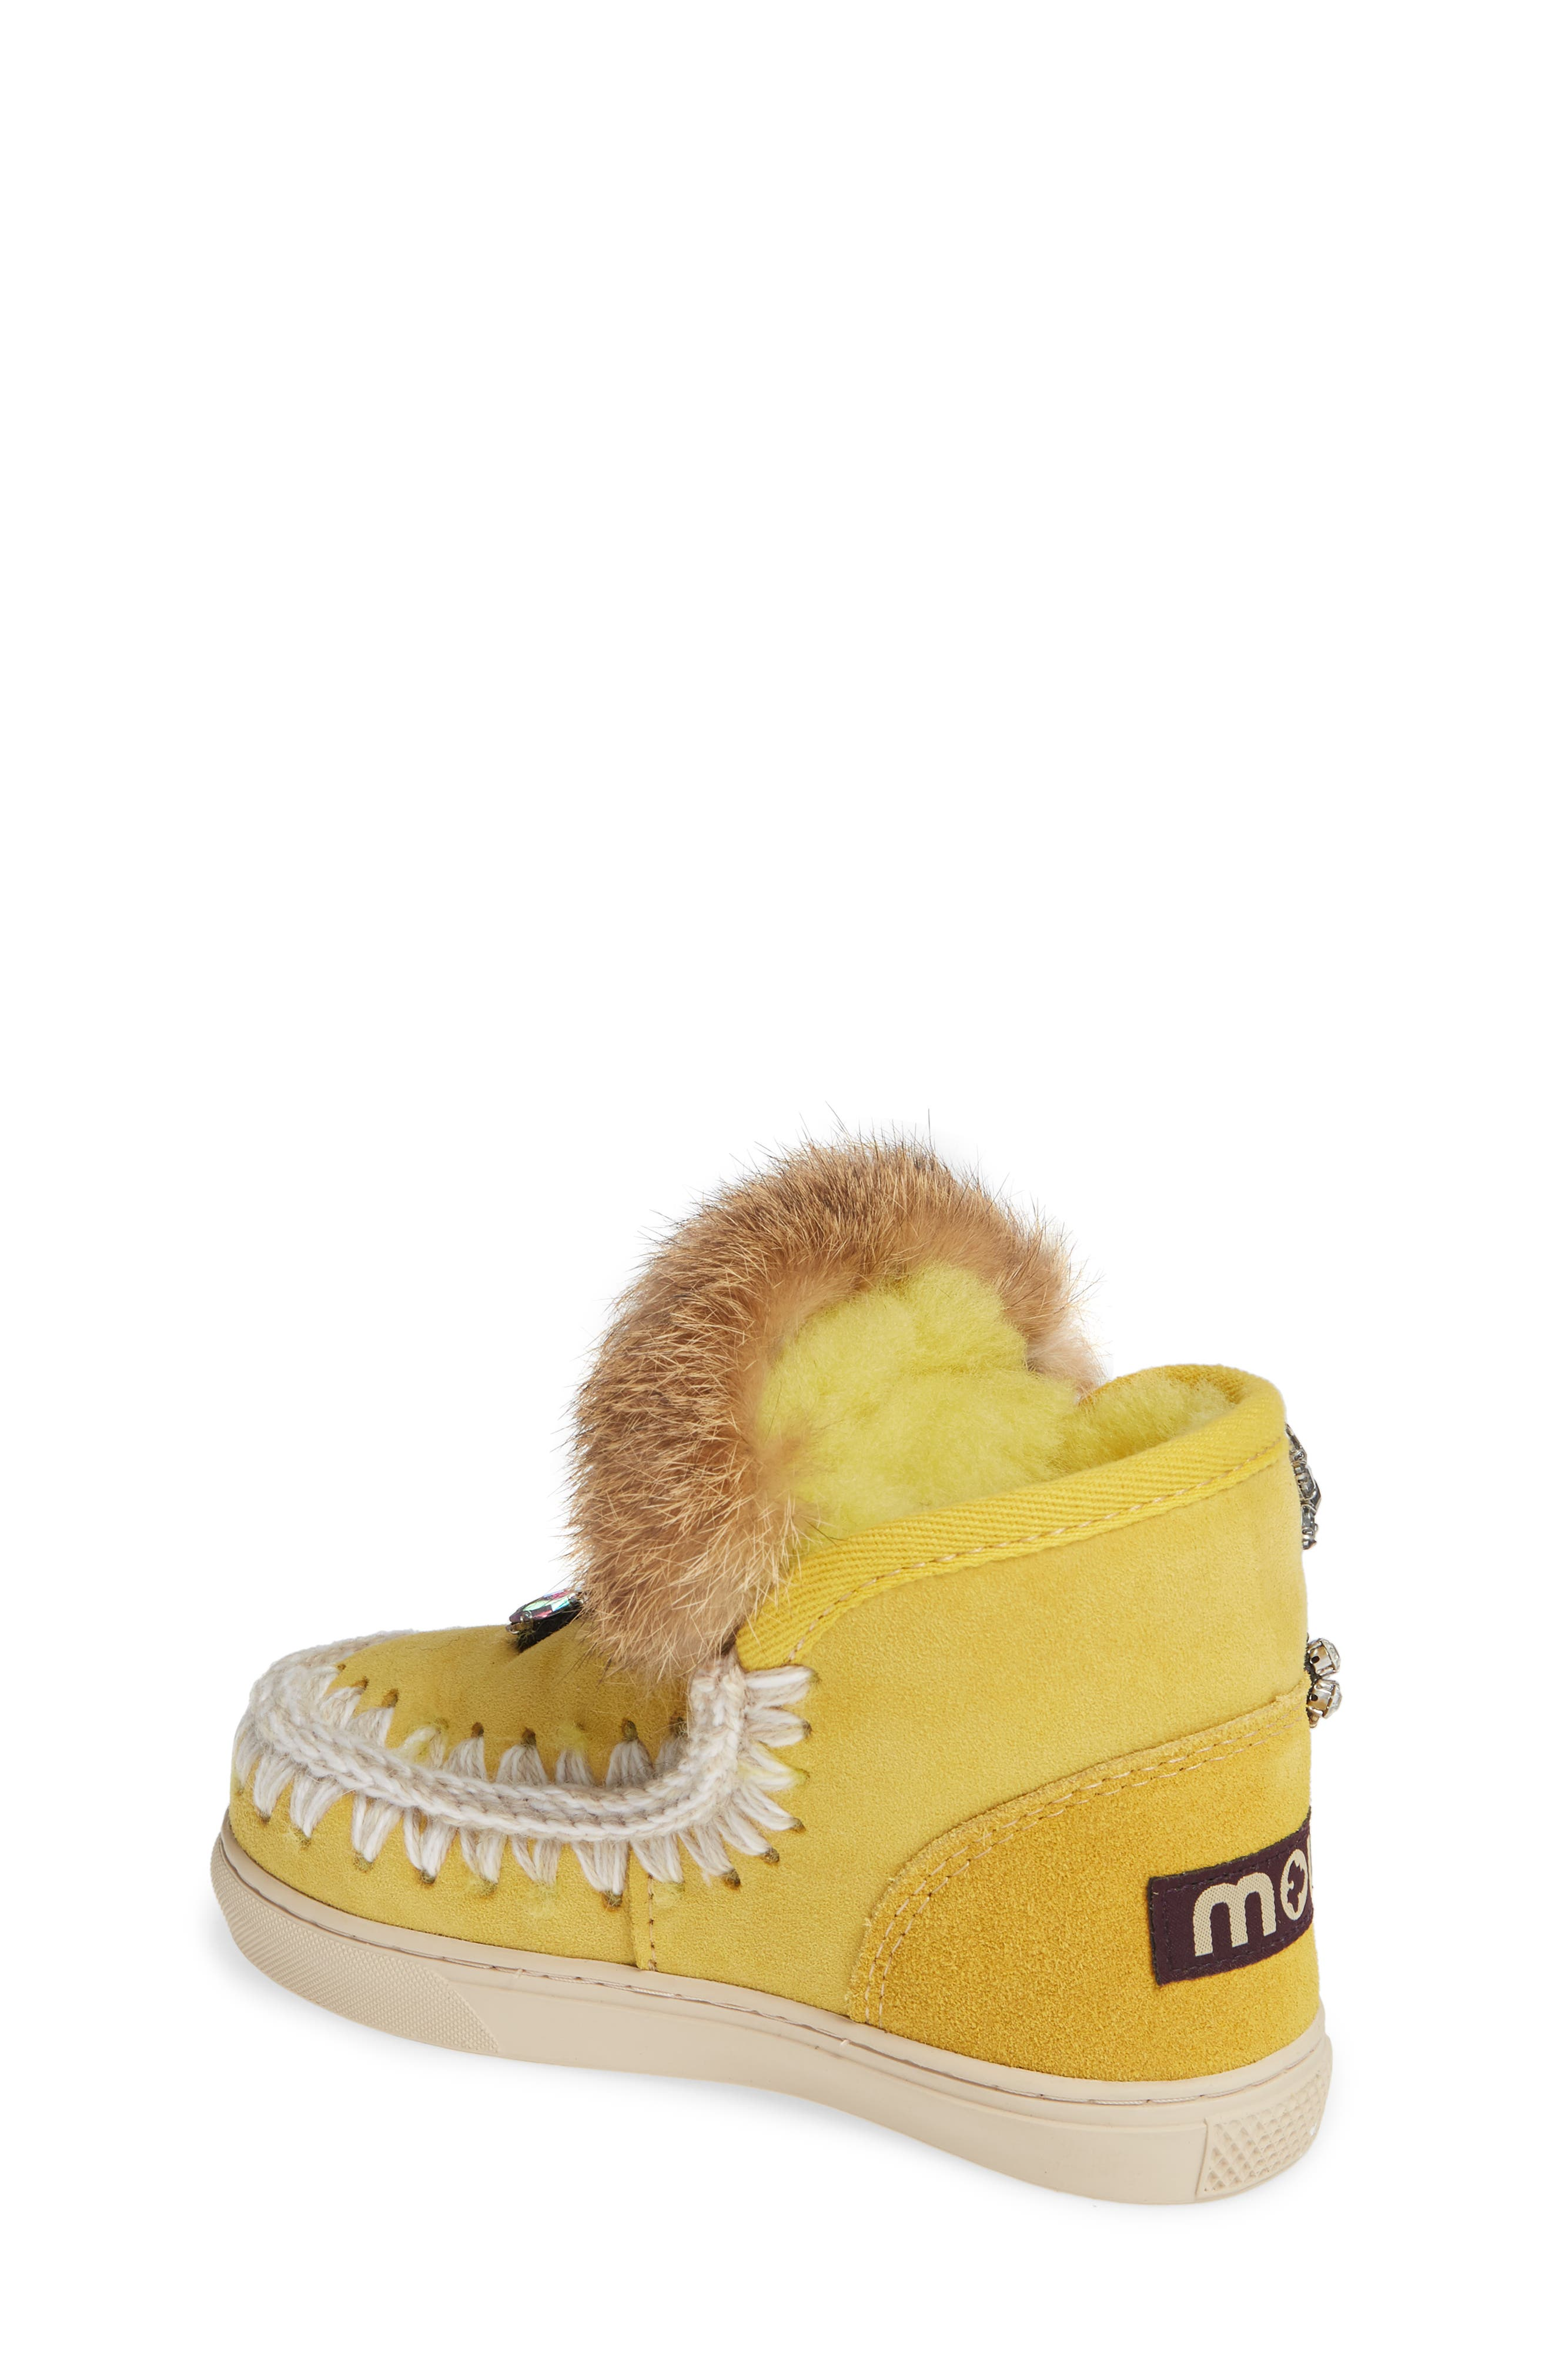 Embellished Genuine Shearling Sneaker Boot,                             Alternate thumbnail 2, color,                             OLIVE YELLOW